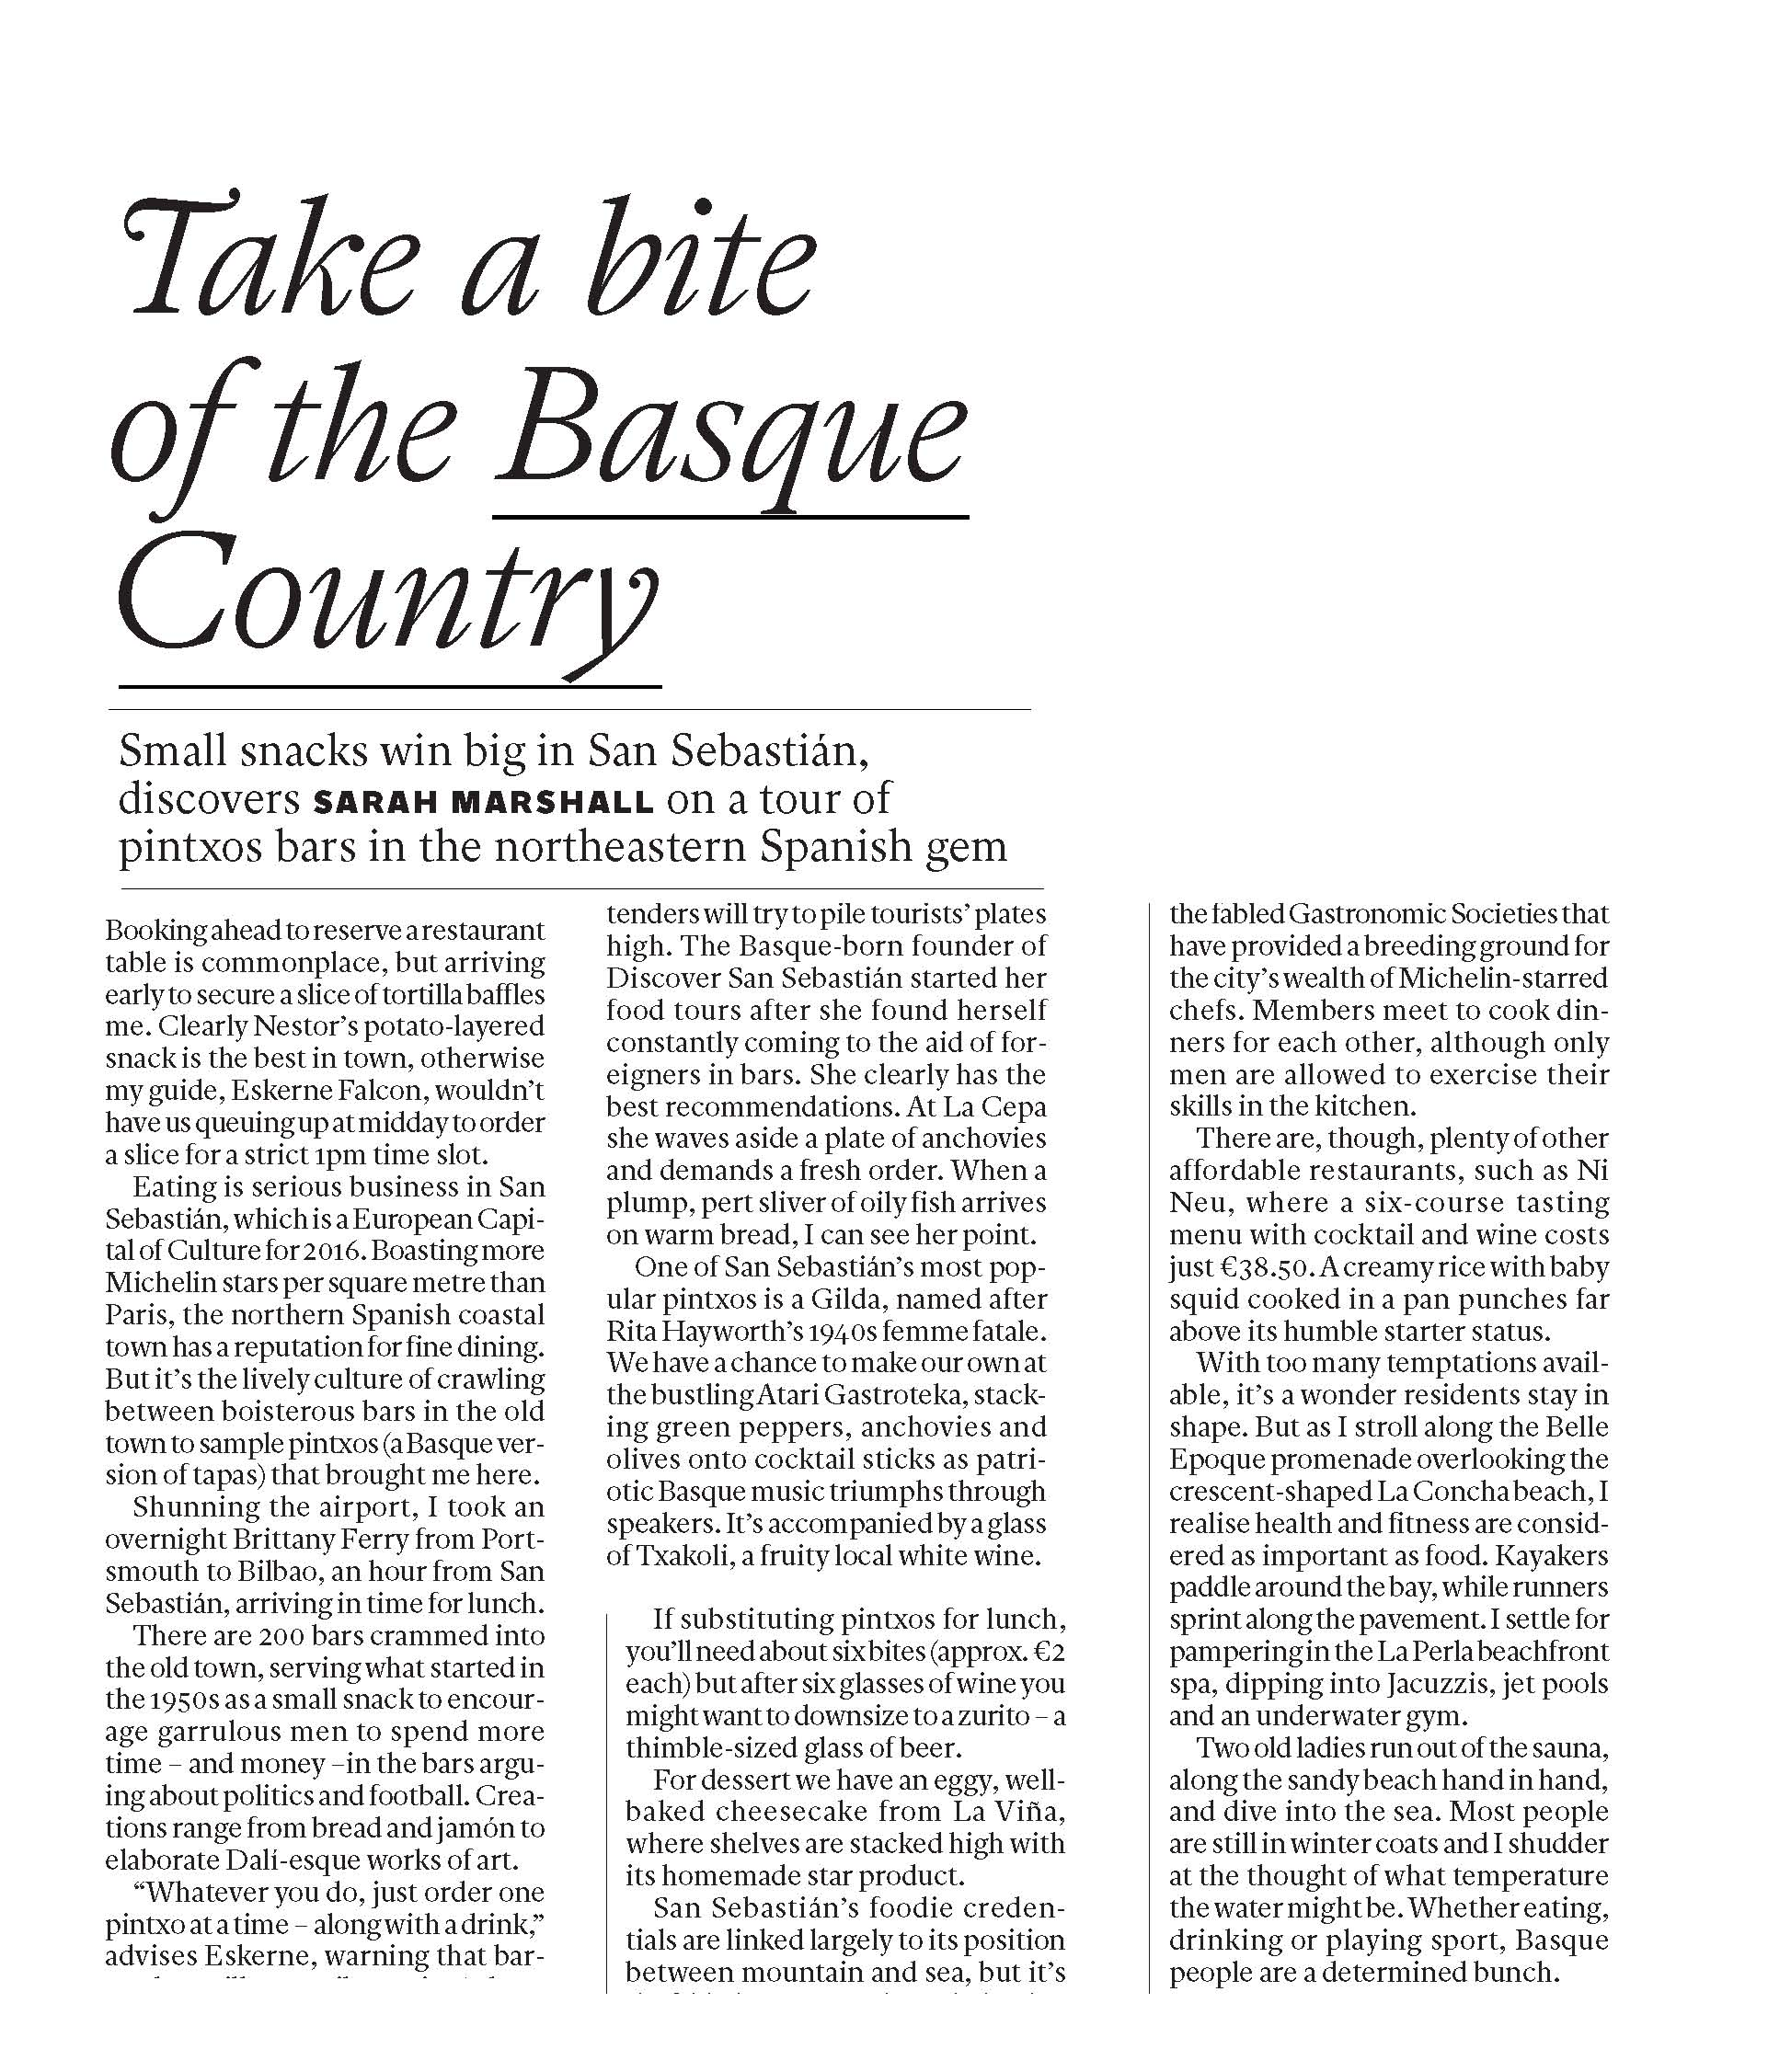 take a bite of the basque country Page 1